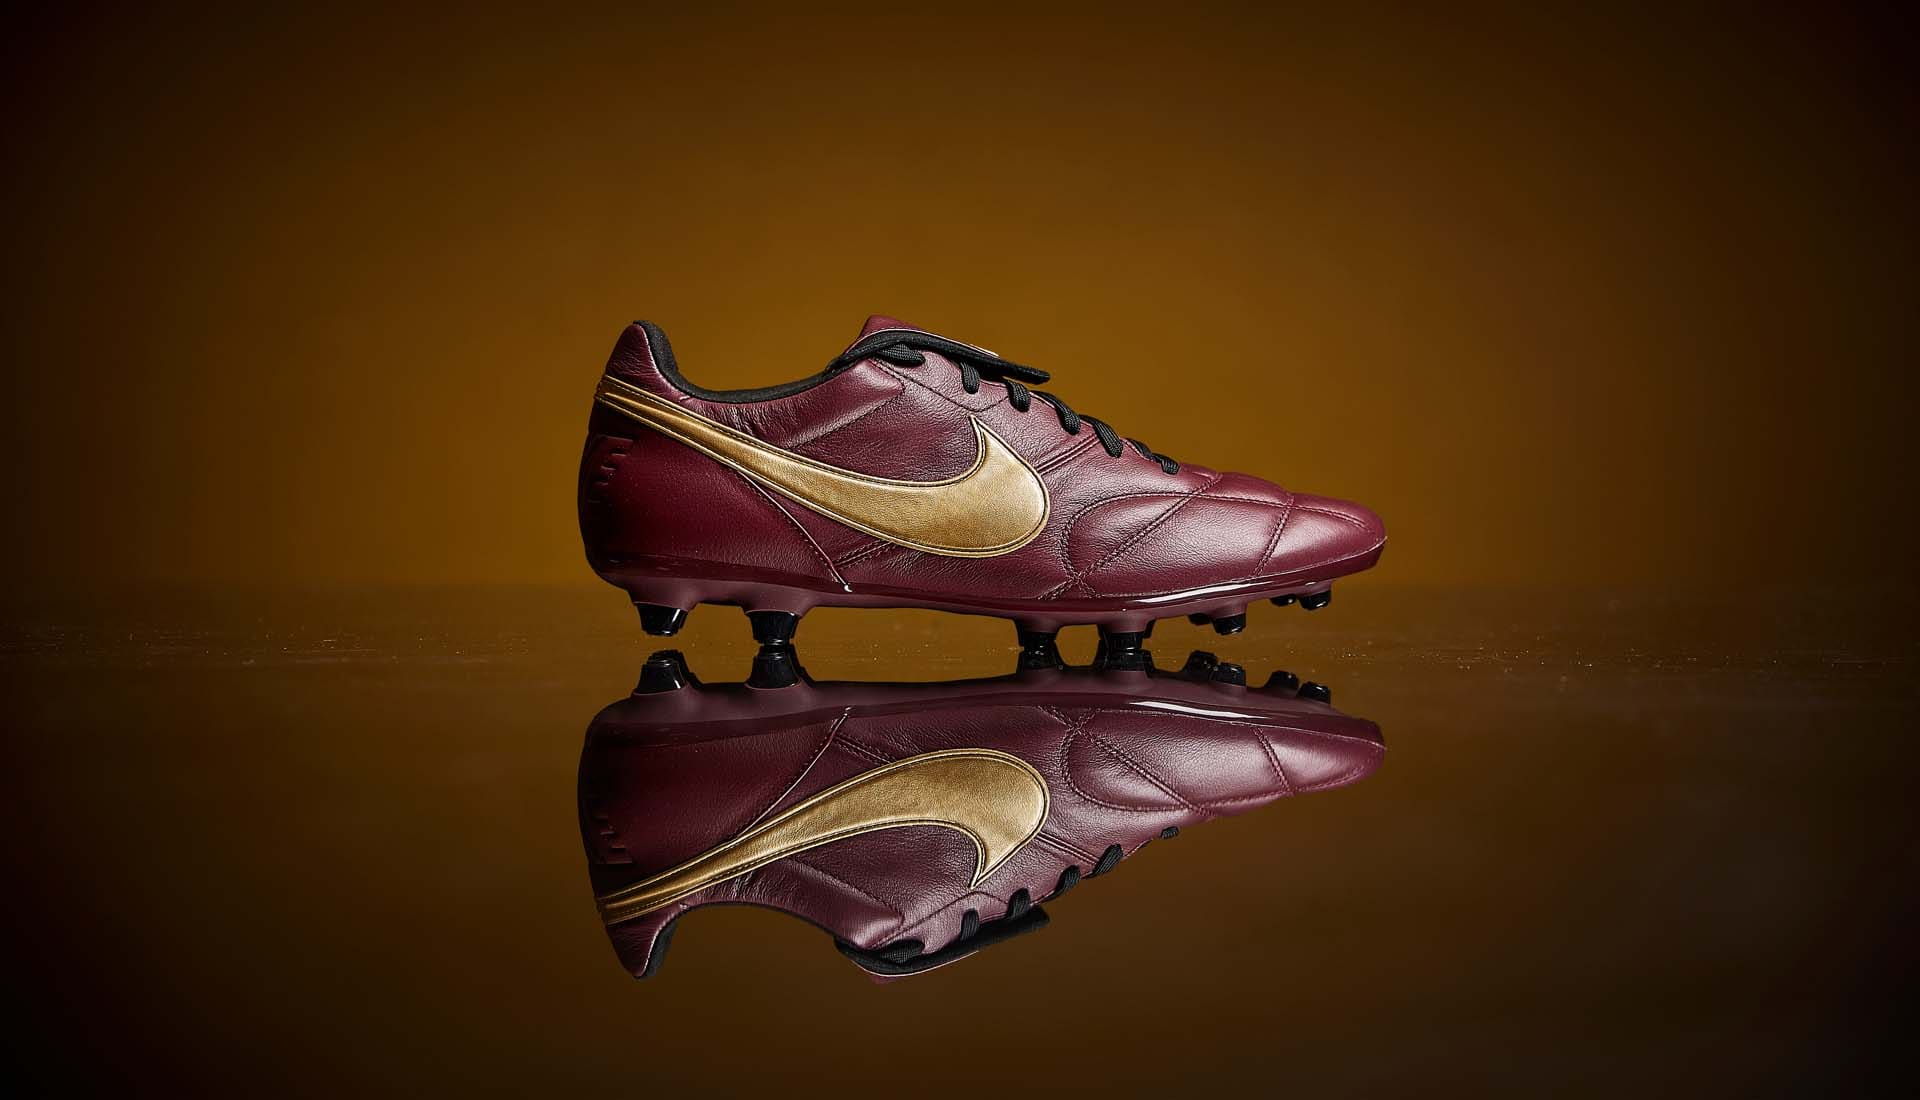 Usual Molde Despertar  Nike Launch Two New Colourways For The Premier II - SoccerBible